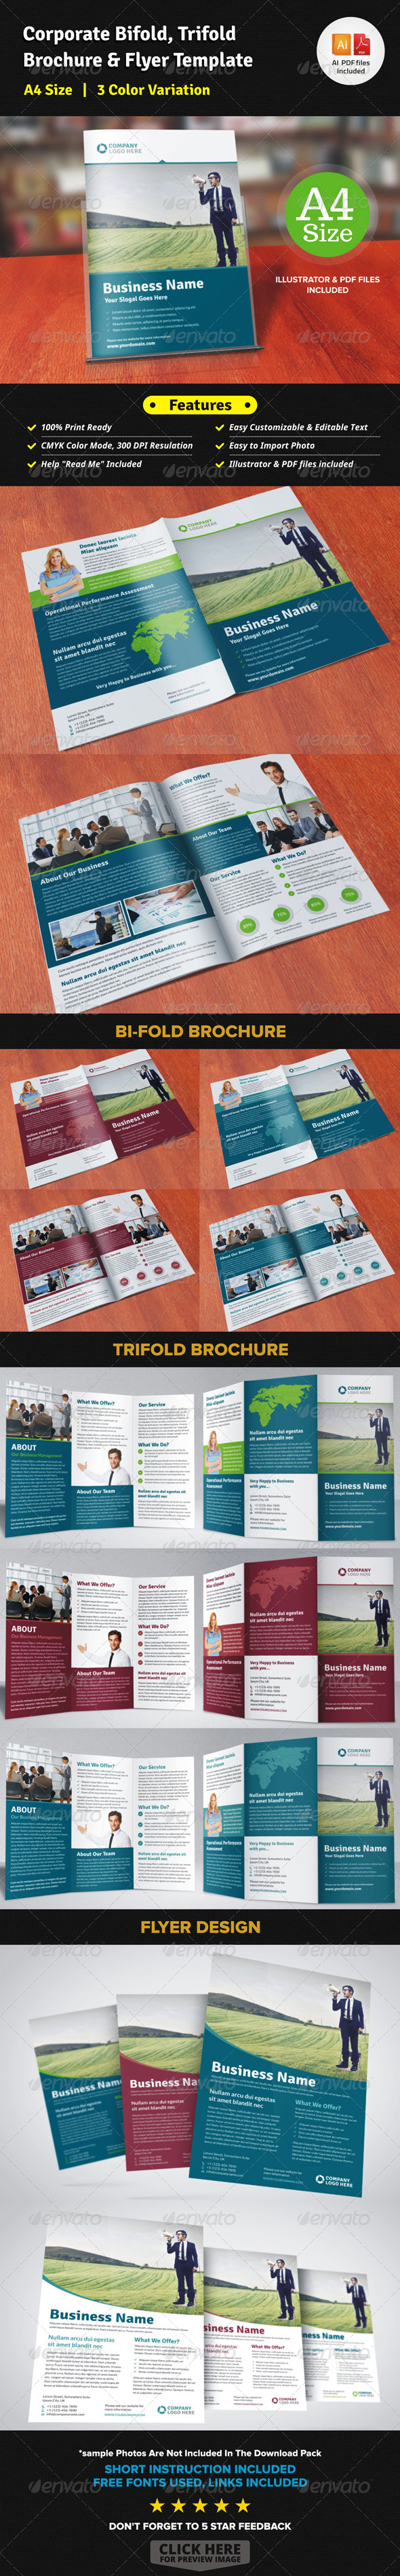 Corporate Bifold Trifold Brochure & Flyer Templat